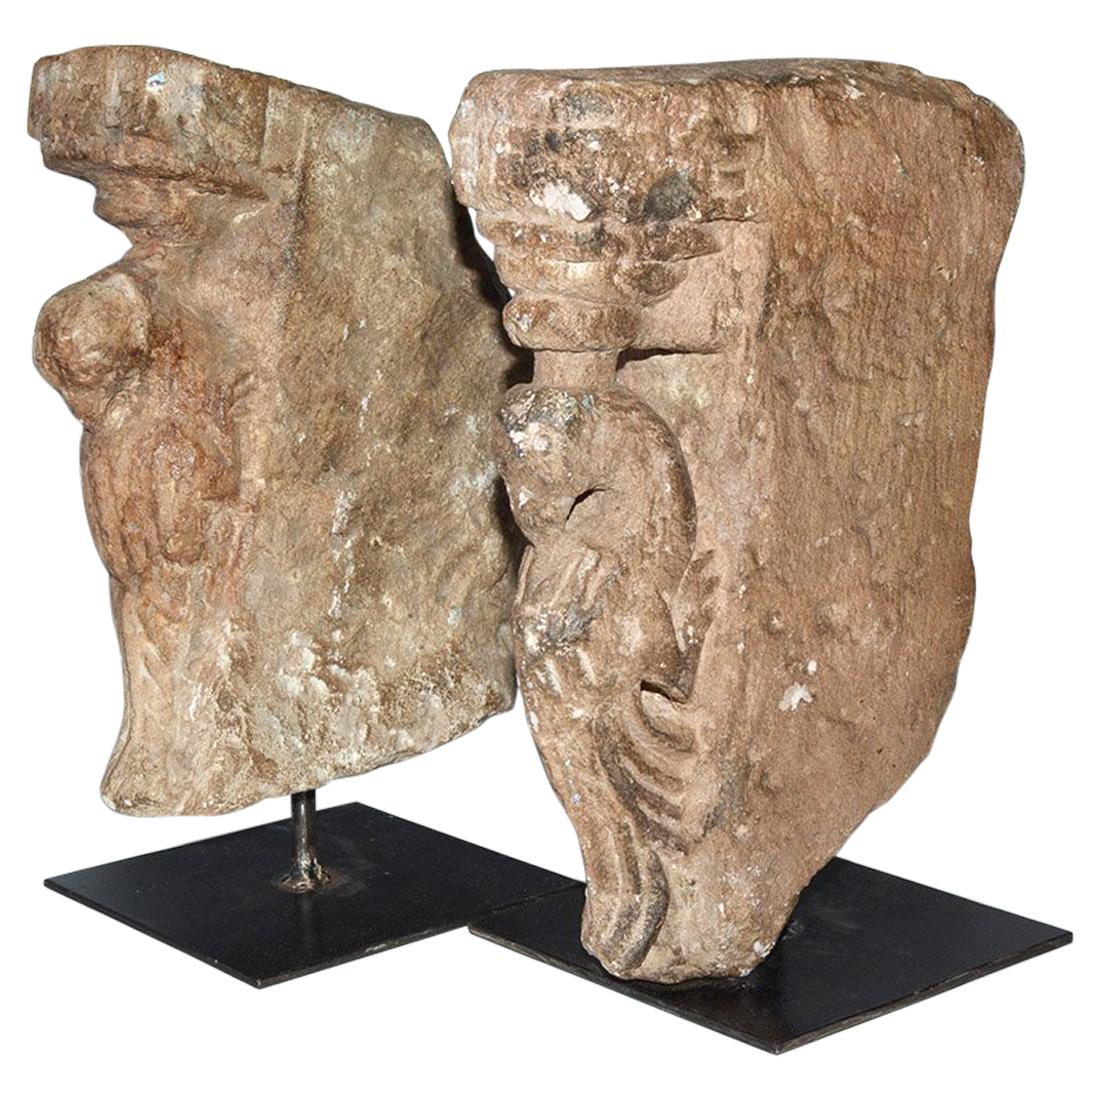 Pair of Medieval Style Architectural Stone Sculptures